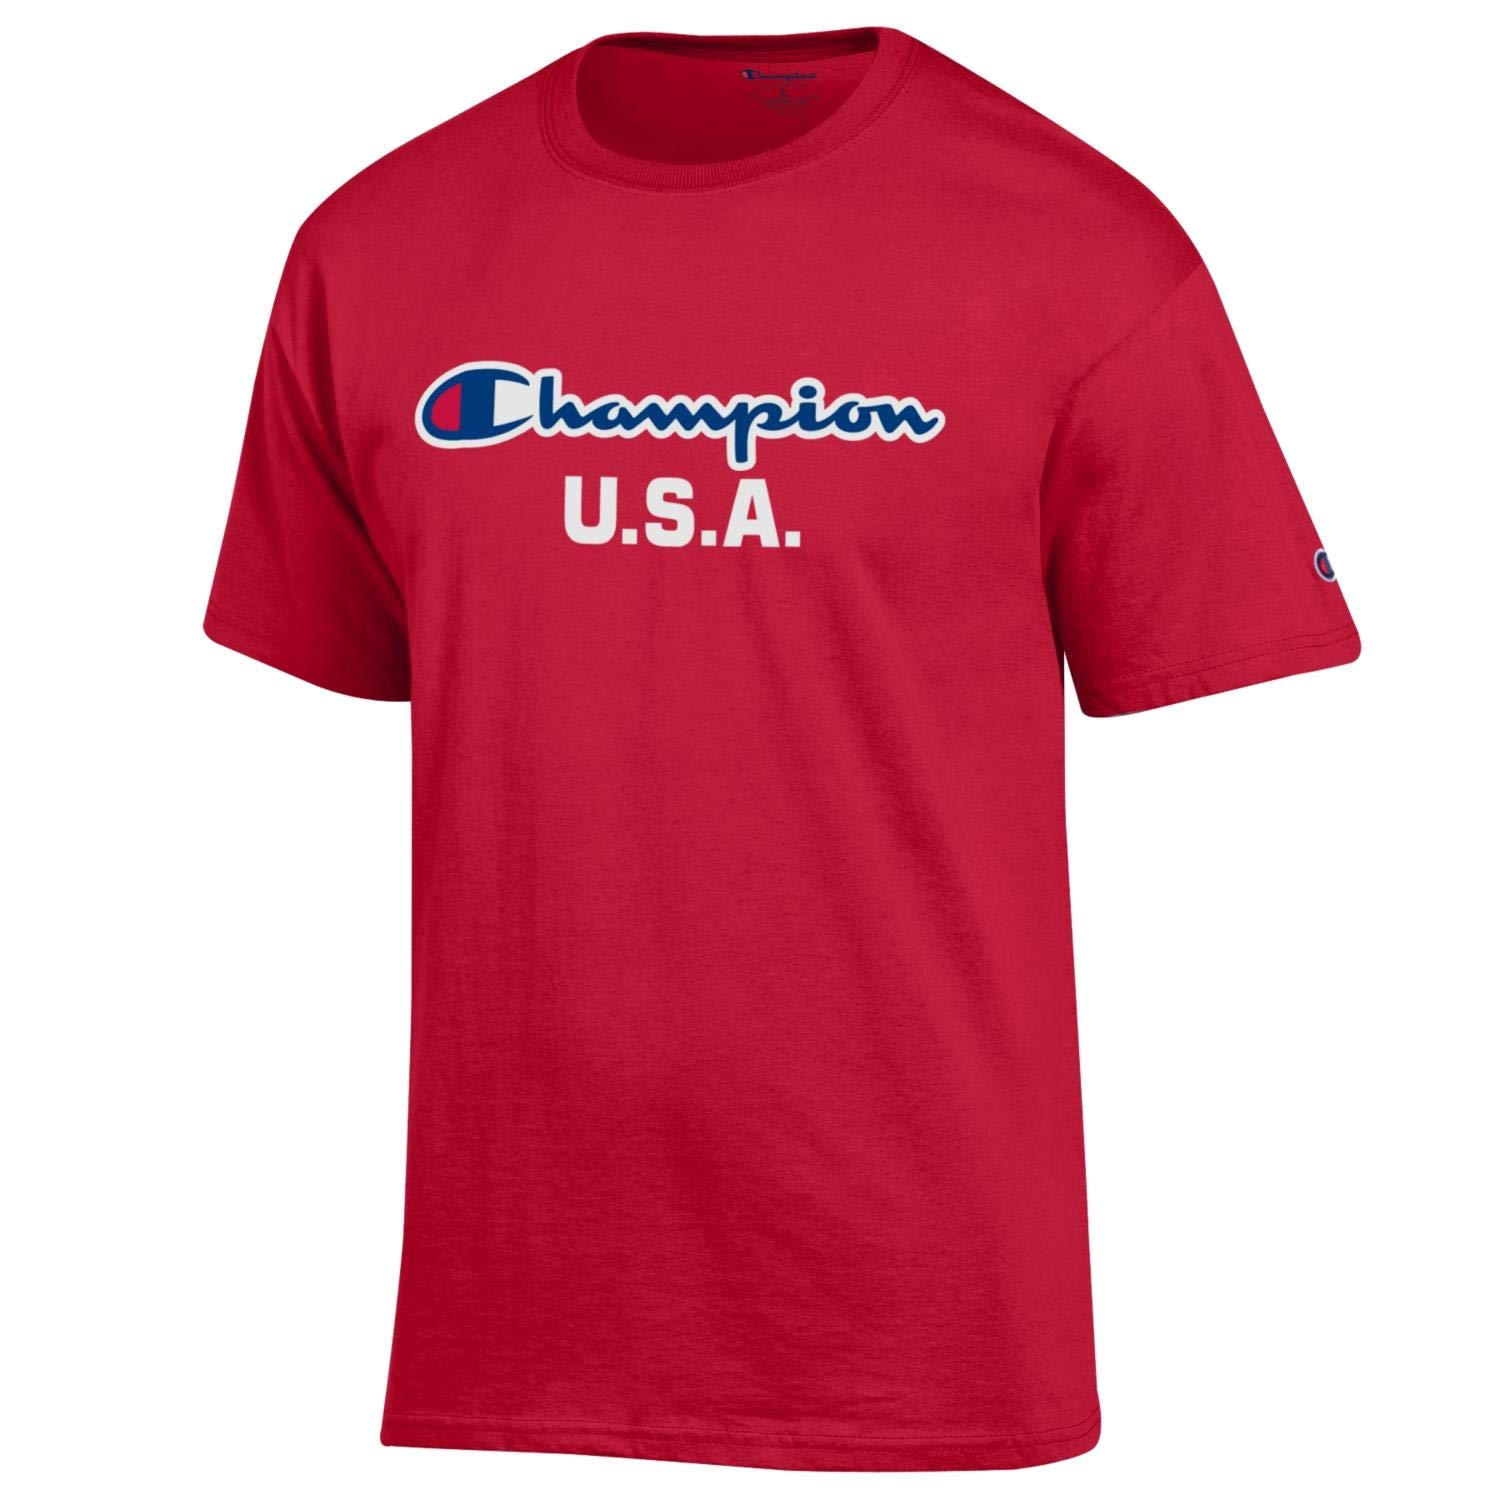 Champion Men's USA/Military Collection-Air Force, Army, Marines-Cotton T-Shirt (X-Large, USA/Red Script Over U.S.A.)